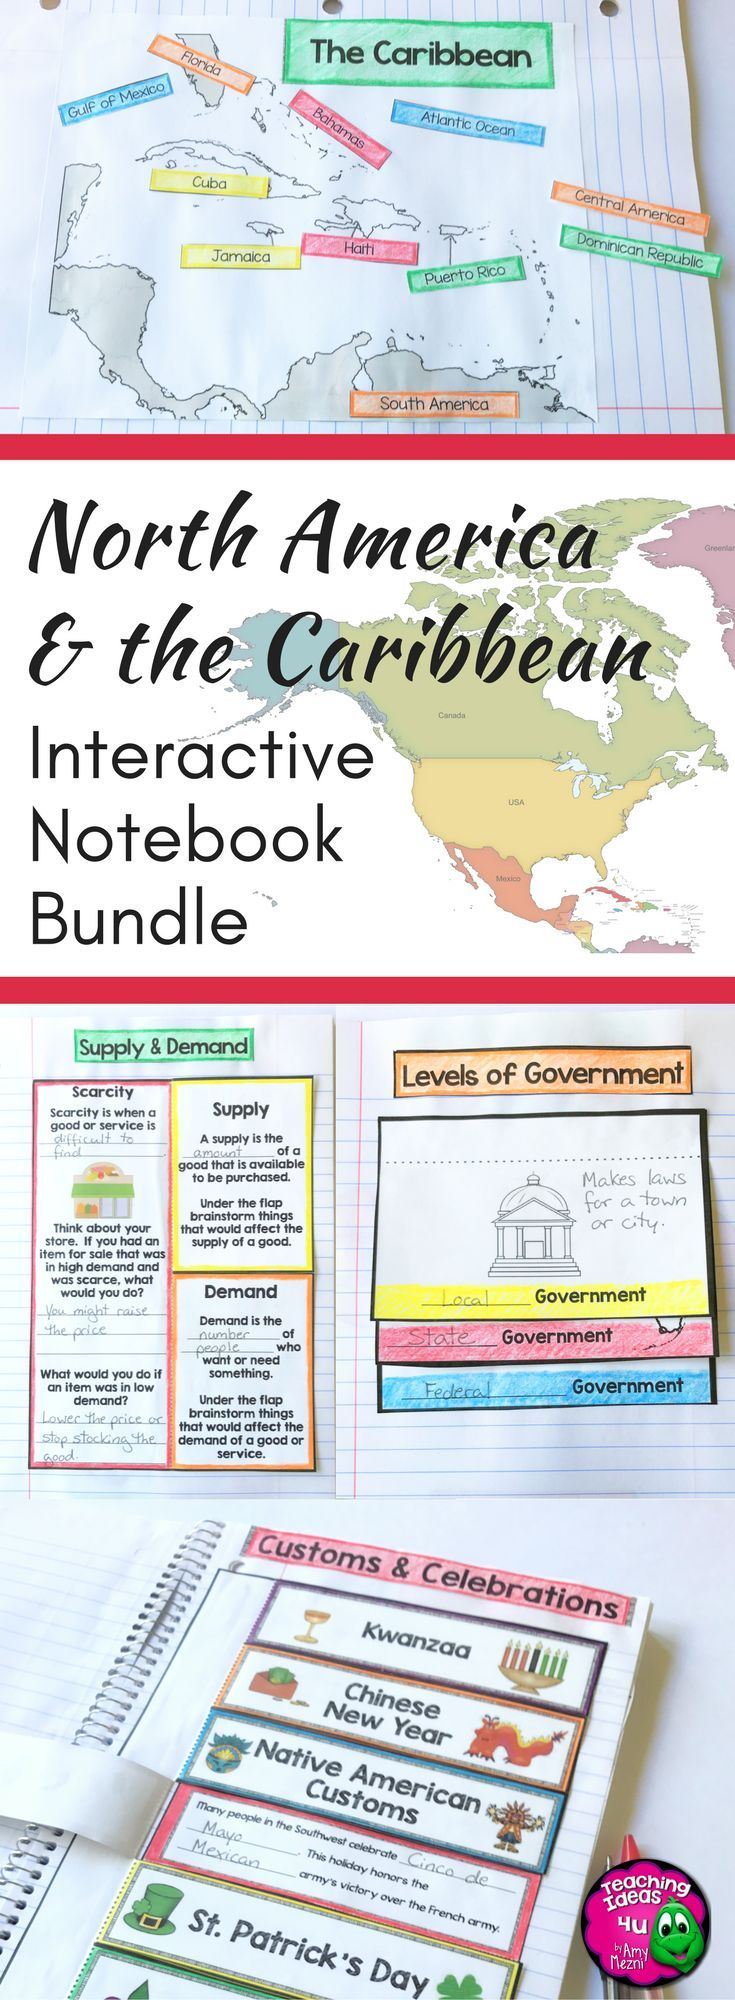 North America Interactive Notebook Bundle Social Studies 3rd Grade - This is a complete set of interactive notebooks with assessments for North American geography and cultures, economics, and government & civics. The interactivities are created to support students' reading skills. The guiding questions and topics provided help students determine which facts are main ideas. Great for third grade teachers of history, civics, and economics social studies topics. {third graders}